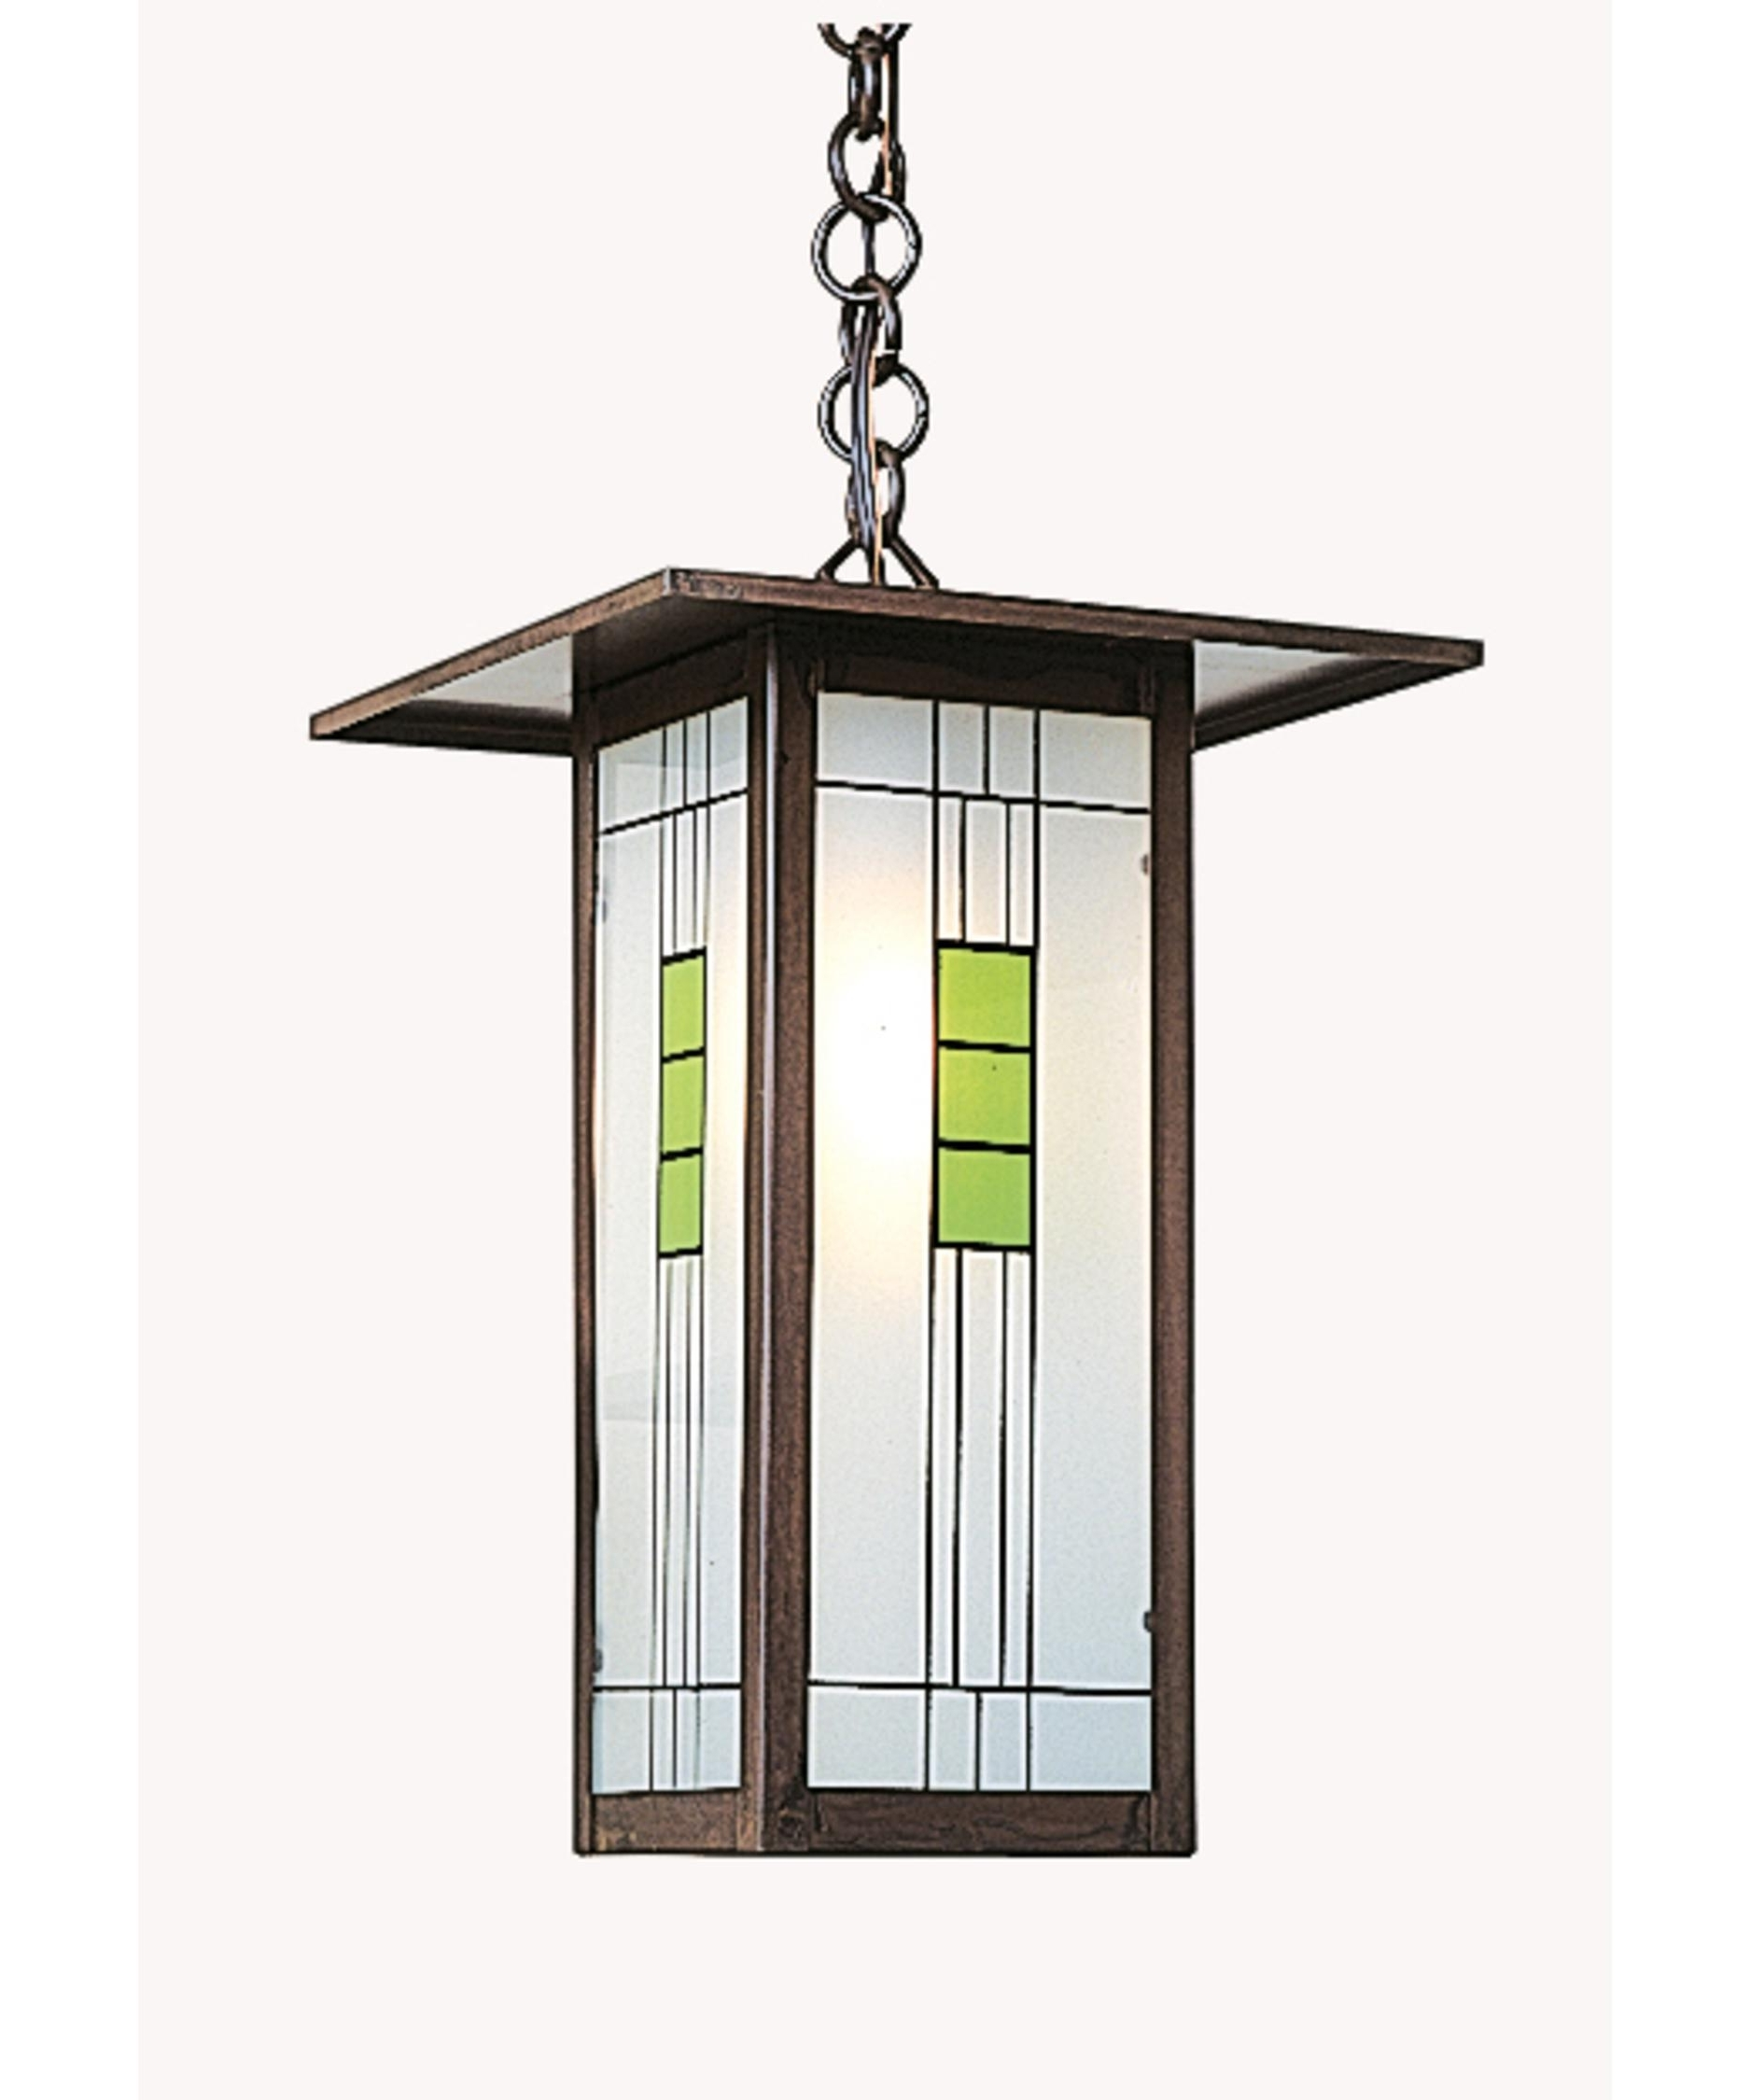 Arroyo Craftsman Fh 9L Franklin 9 Inch Wide 1 Light Outdoor Hanging In Current Craftsman Outdoor Ceiling Lights (Gallery 3 of 20)